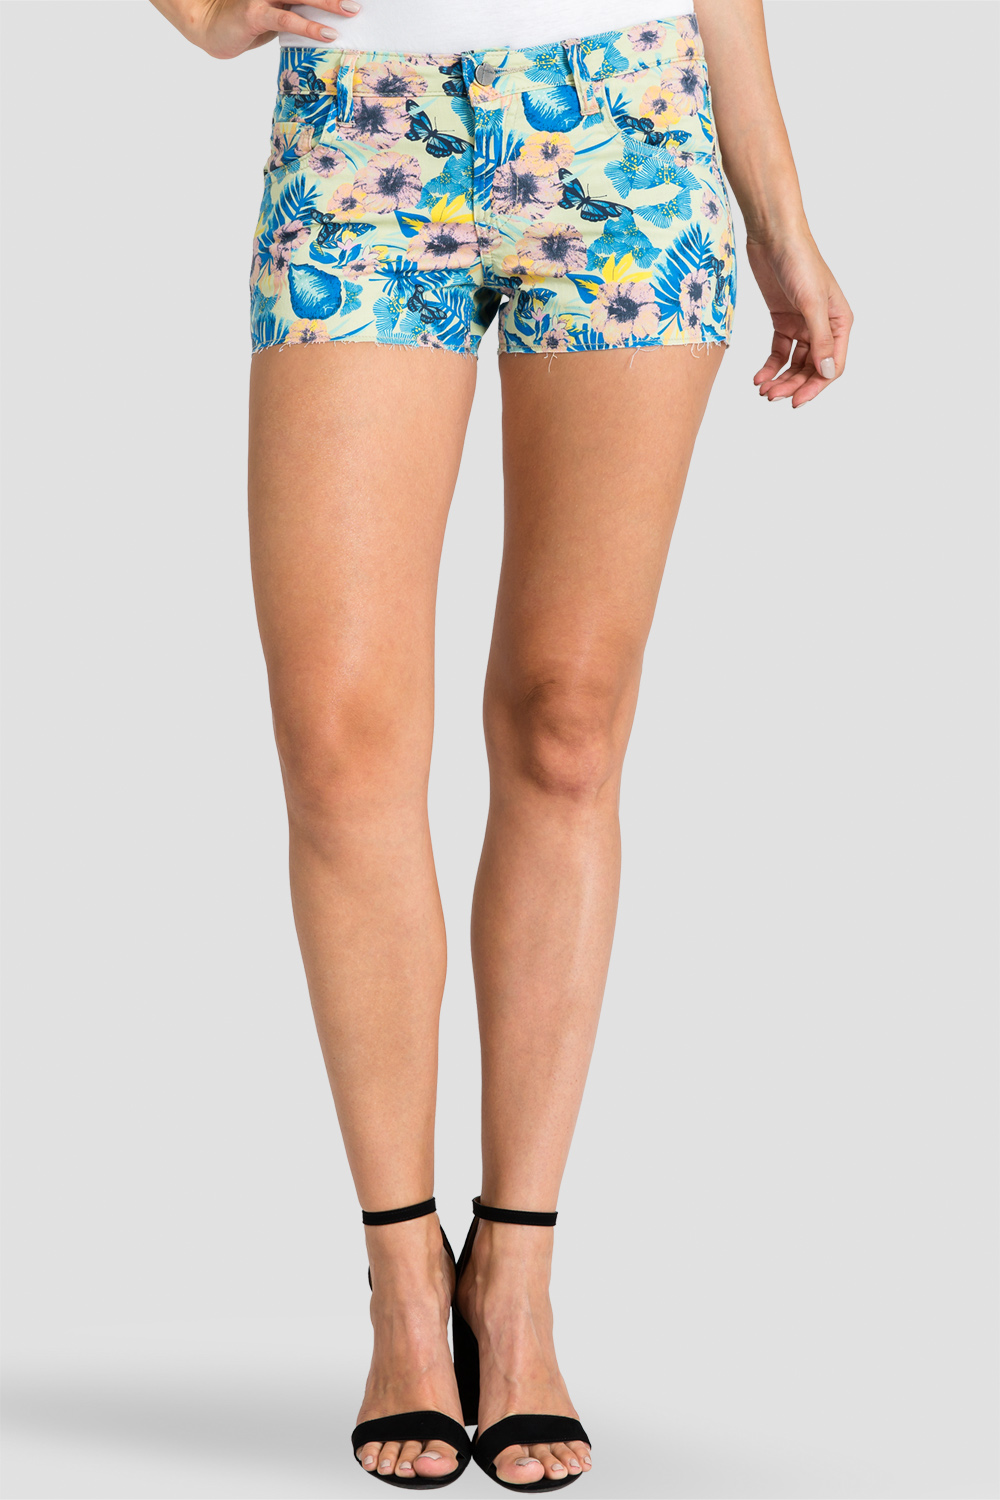 floral shorts for women